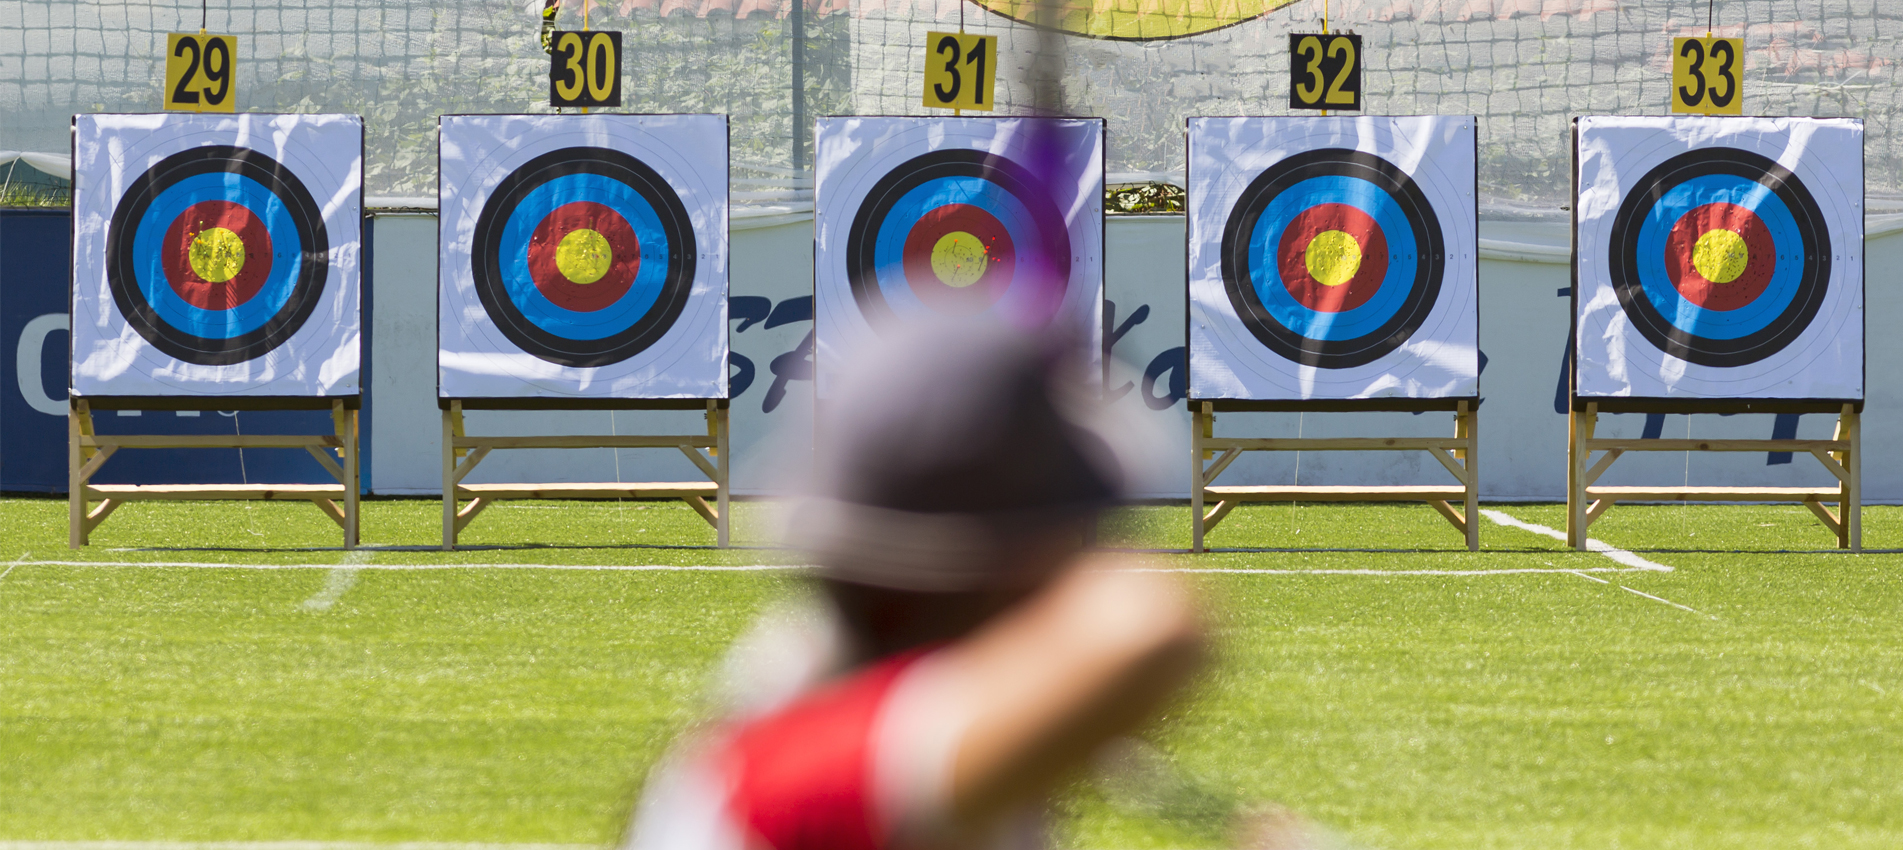 images/slides/archery.jpg